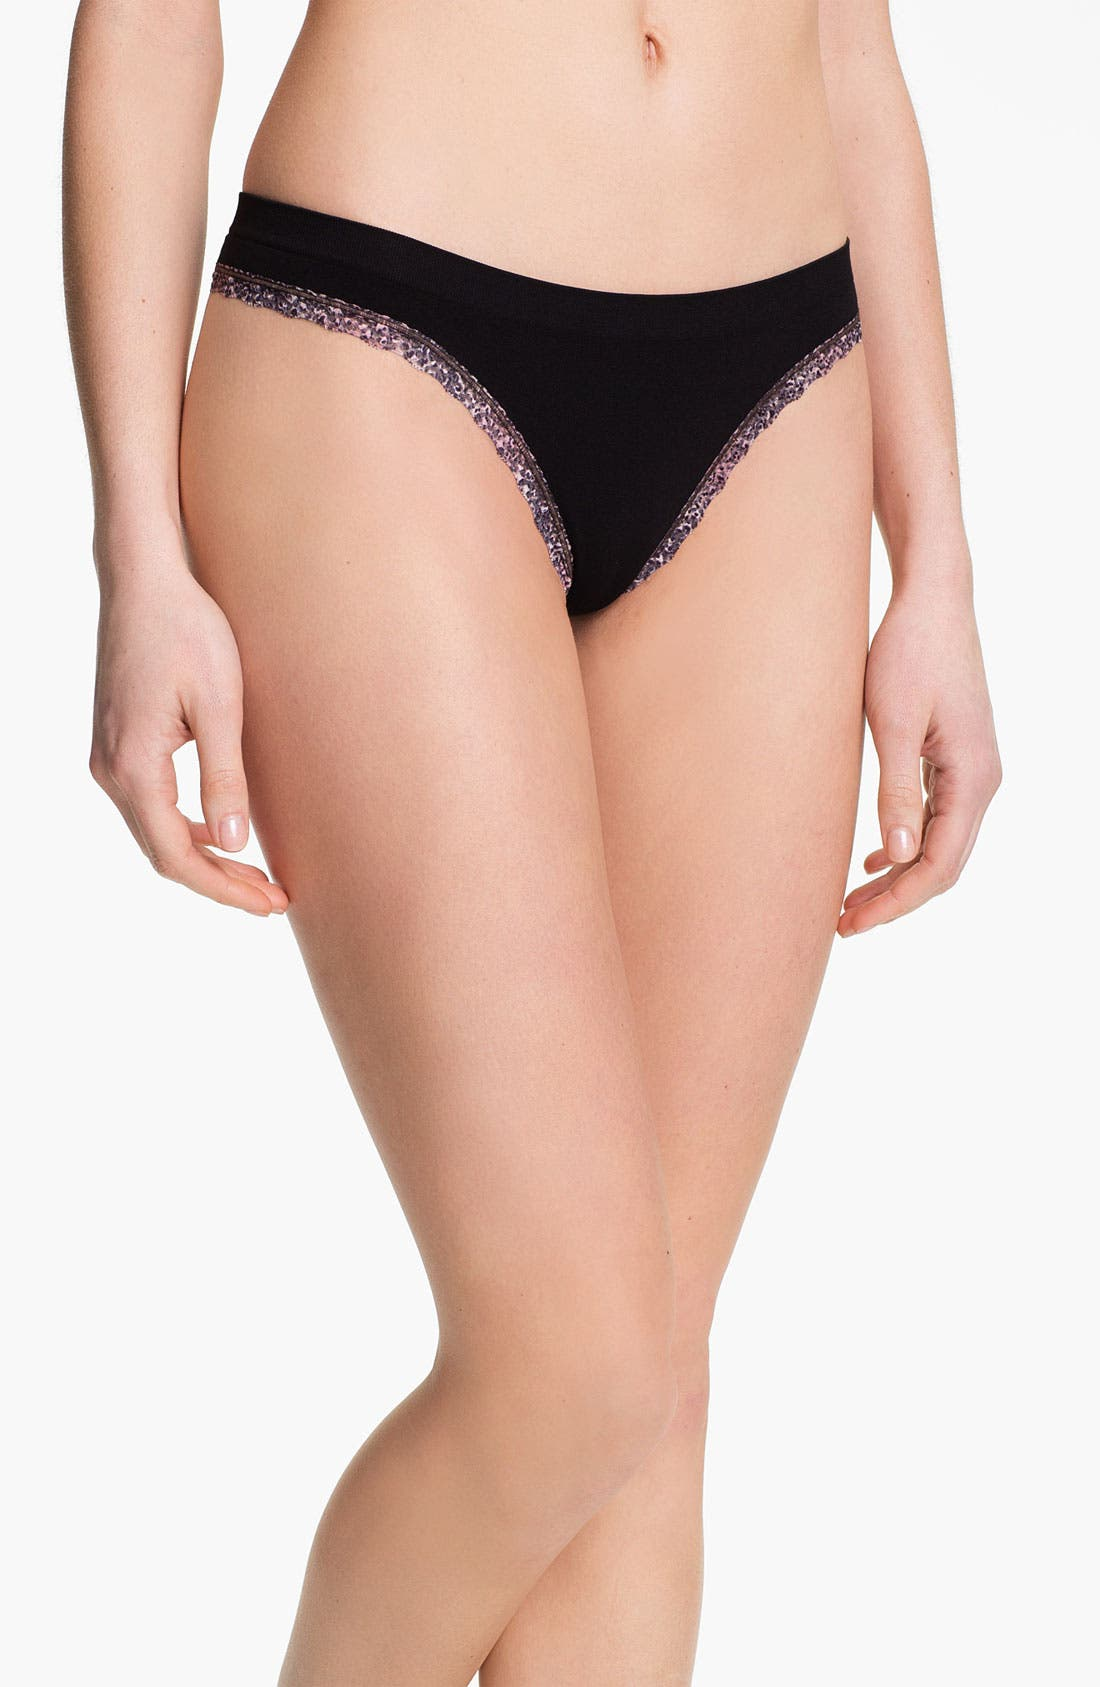 Alternate Image 1 Selected - BP. Undercover Lace Trim Seamless Thong (Juniors)